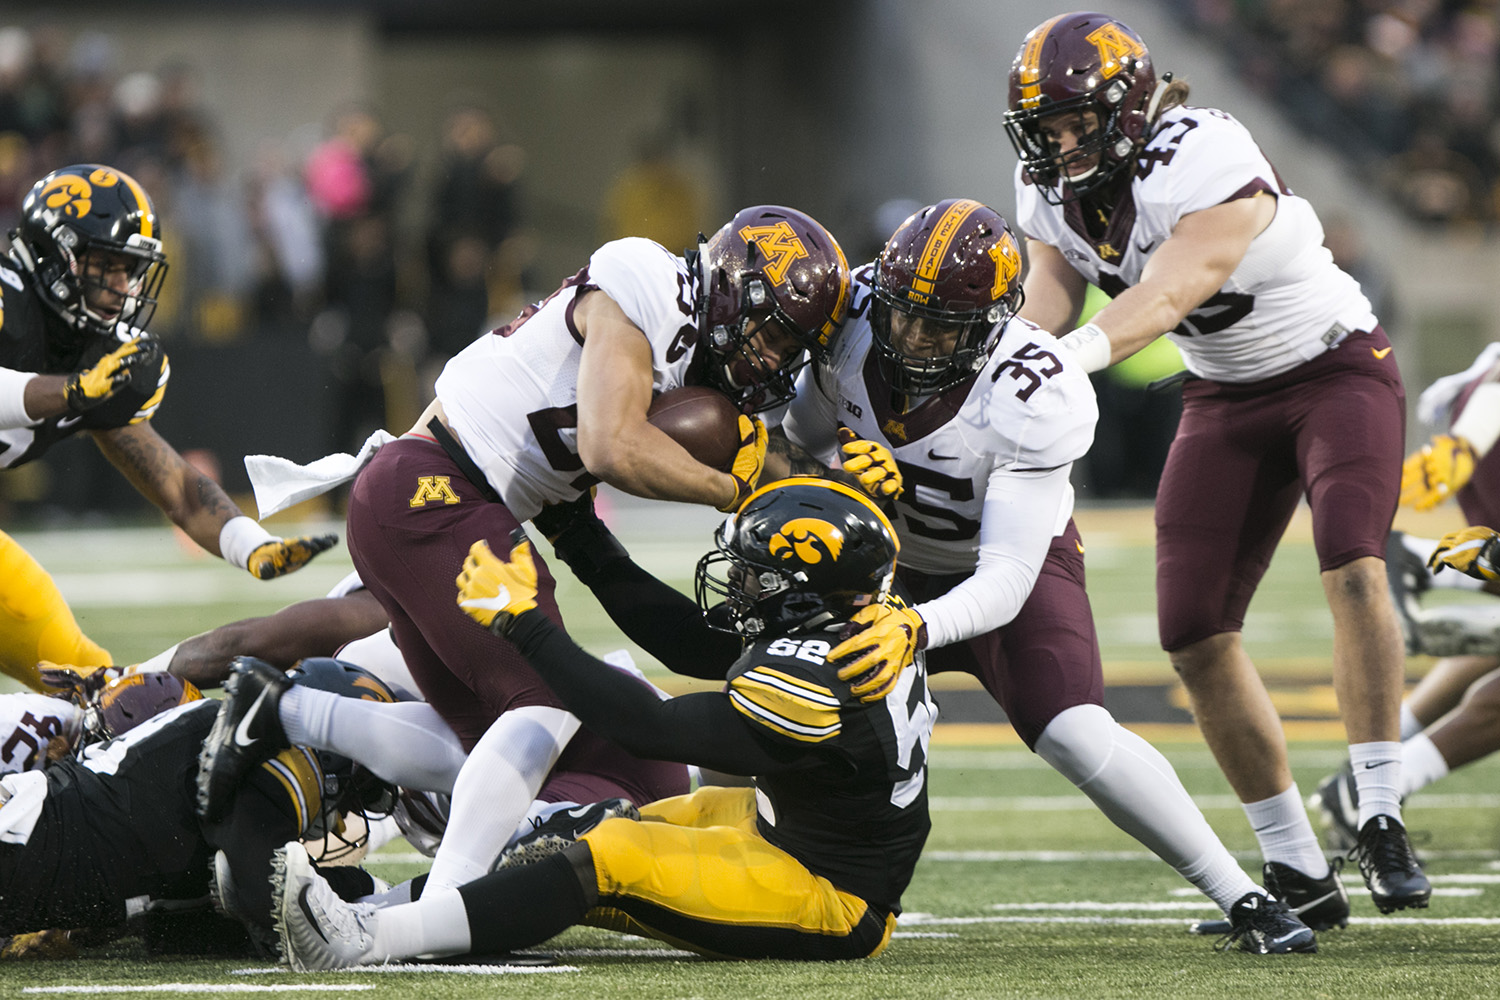 Minnesota running back Shannon Brooks gets tackled by Iowa linebacker Amani Jones during an Iowa/Minnesota football game in Kinnick Stadium on Oct. 28, 2017. The Hawkeyes defeated the Golden Gophers, 17-10.